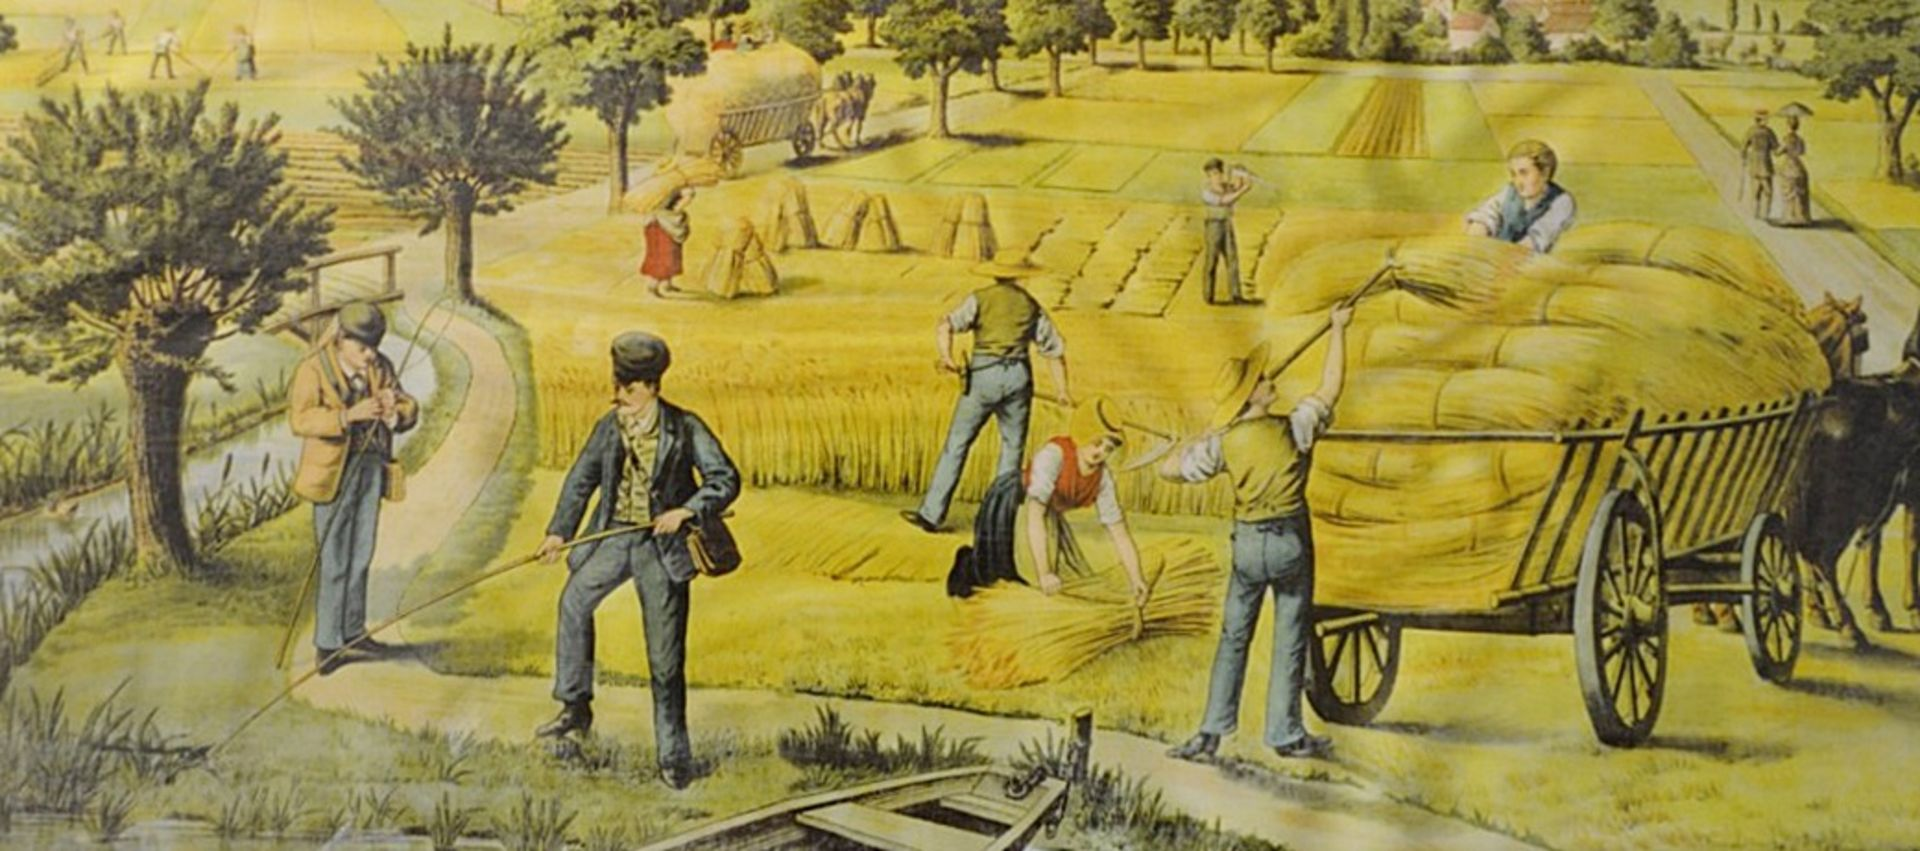 Lot 7428 - 1 x Large 1.6 Metre Long Framed Art Print Featuring A Countryside Scene - Dimensions: 162 x H81